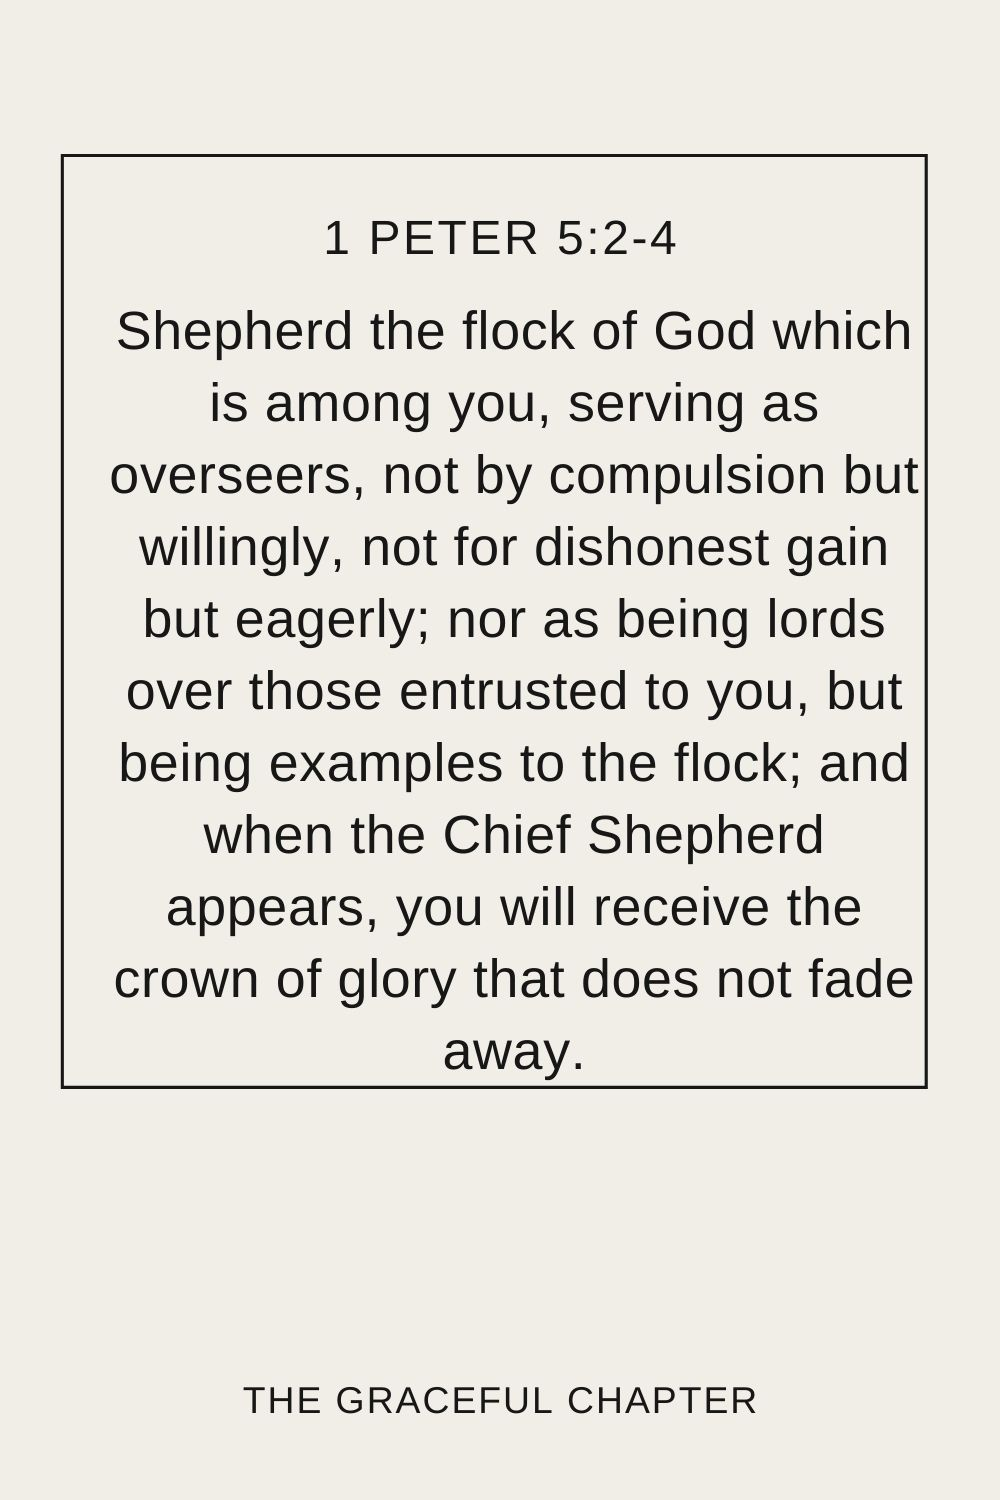 Shepherd the flock of God which is among you, serving as overseers, not by compulsion but willingly, not for dishonest gain but eagerly; nor as being lords over those entrusted to you, but being examples to the flock; and when the Chief Shepherd appears, you will receive the crown of glory that does not fade away. 1 Peter 5:2-4